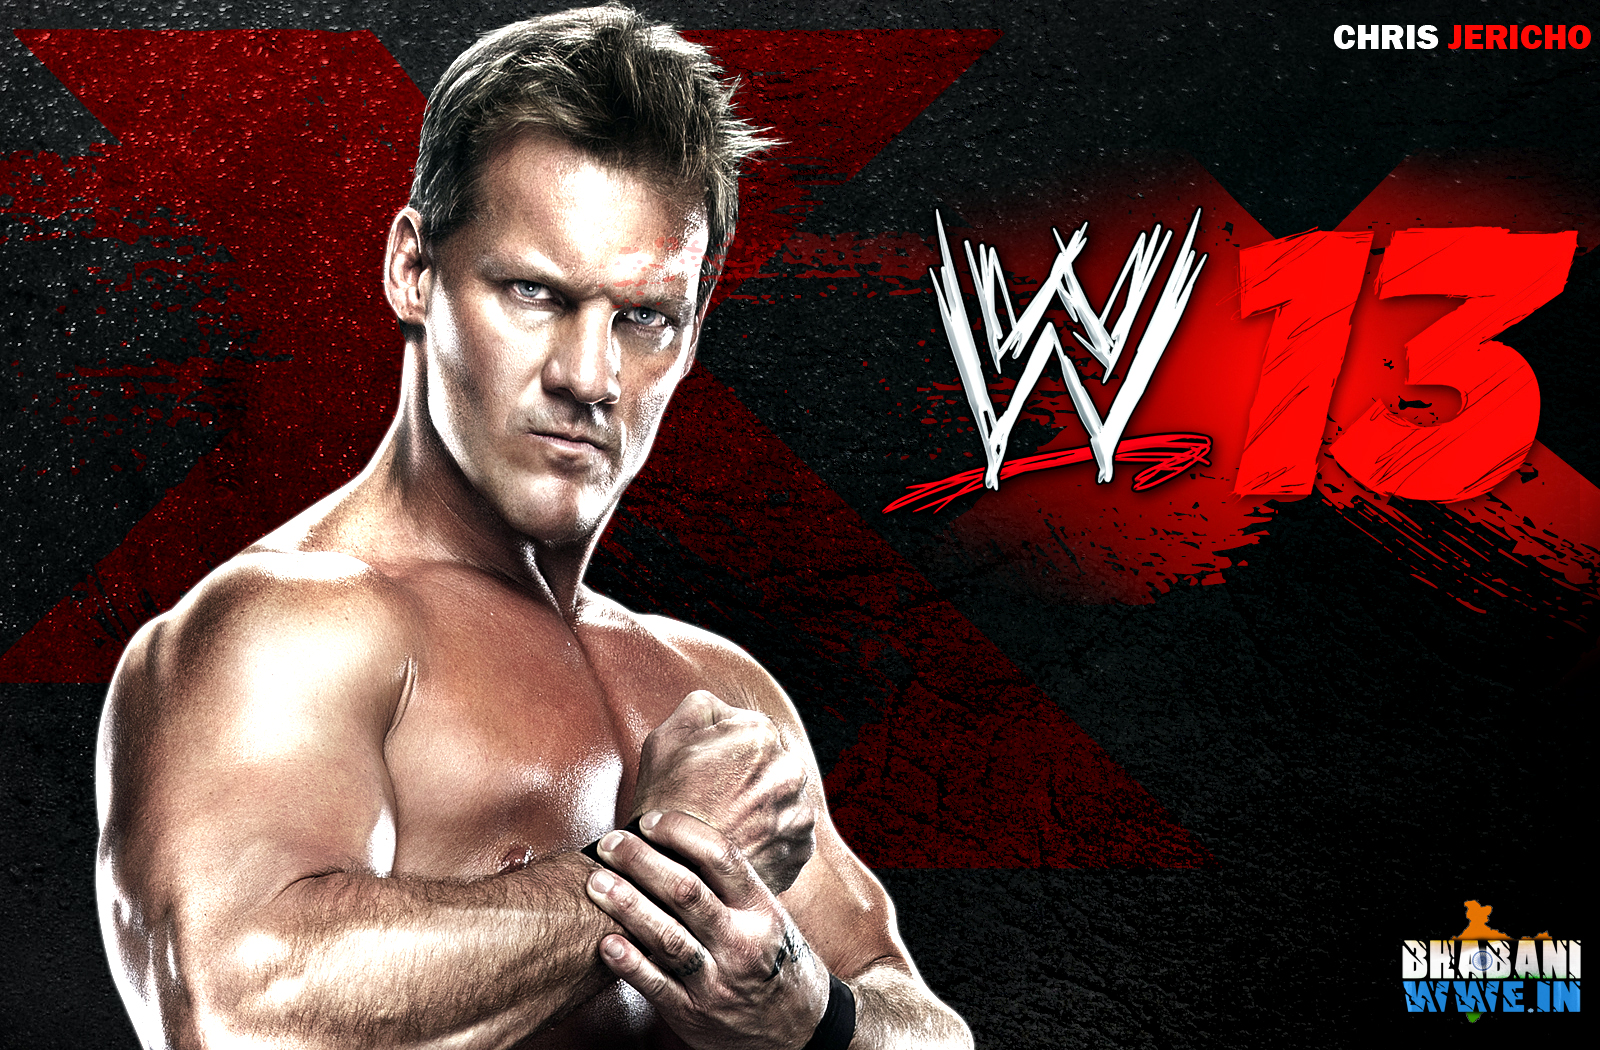 http://1.bp.blogspot.com/-Hnln0qNd958/T9L7Uqjjl3I/AAAAAAAAKkw/Uh7lijnEMFI/s1600/wwe_%2713_chris_jericho_hq_wallpaper_revolution_coming_bhabaniwwe.in.jpg